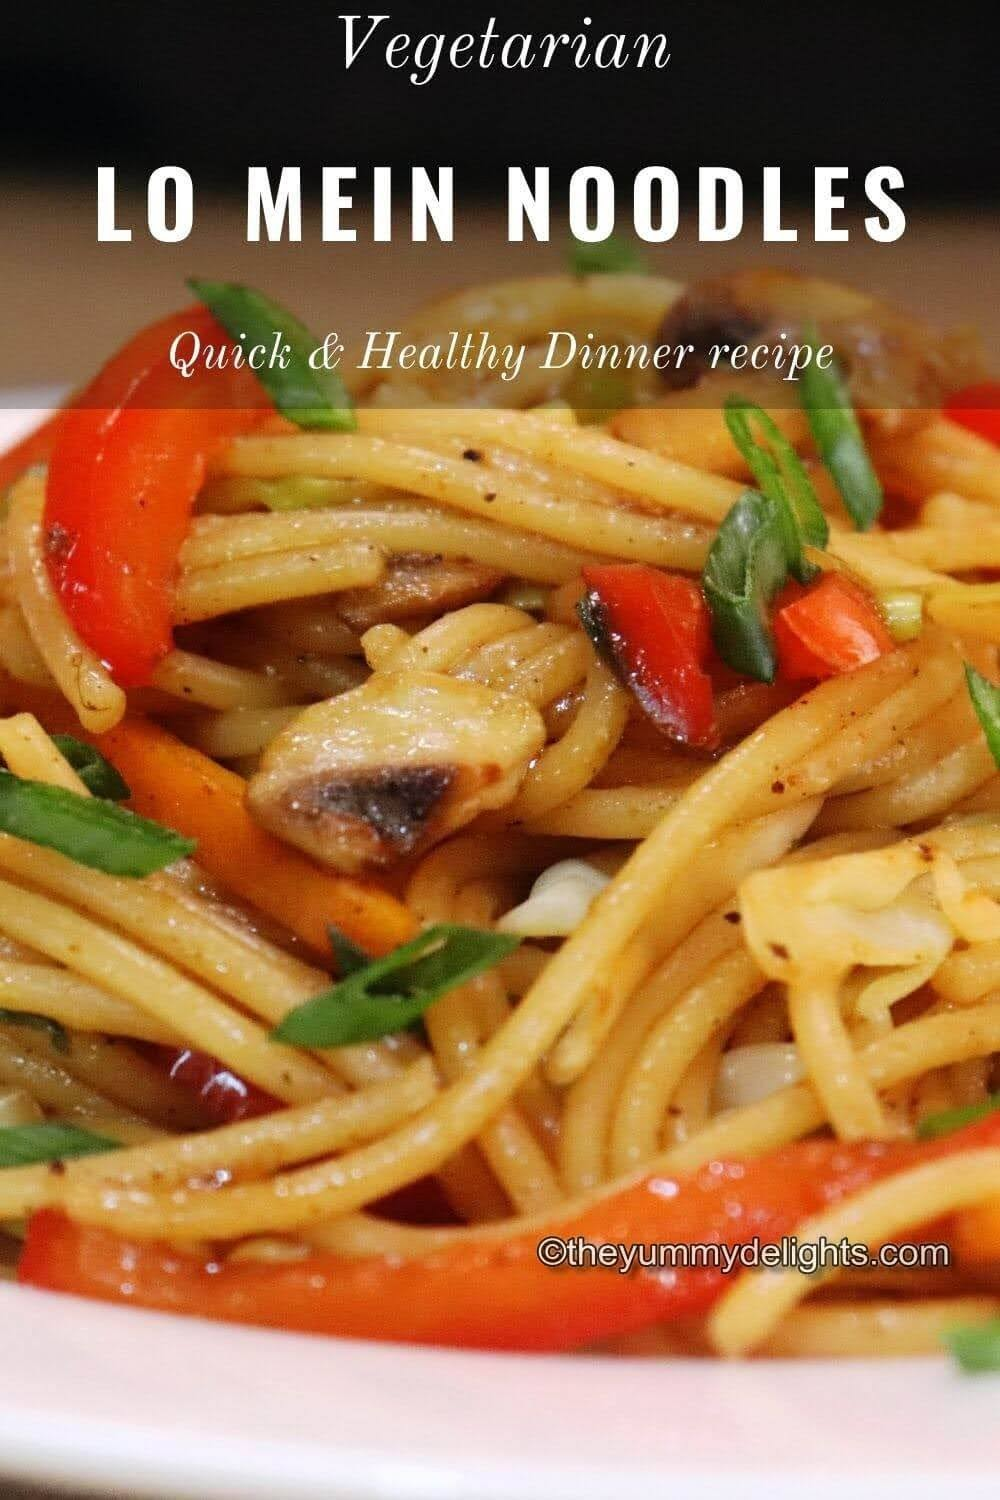 Vegetable Lo Mein close-up image. This Lo Mein noodles are served on a white plate. Garnished with spring onion greens./>     <p><strong>If you like this recipe, you may be interested in these other quick dinner recipes:</strong></p>    <ul><li><strong><a href=